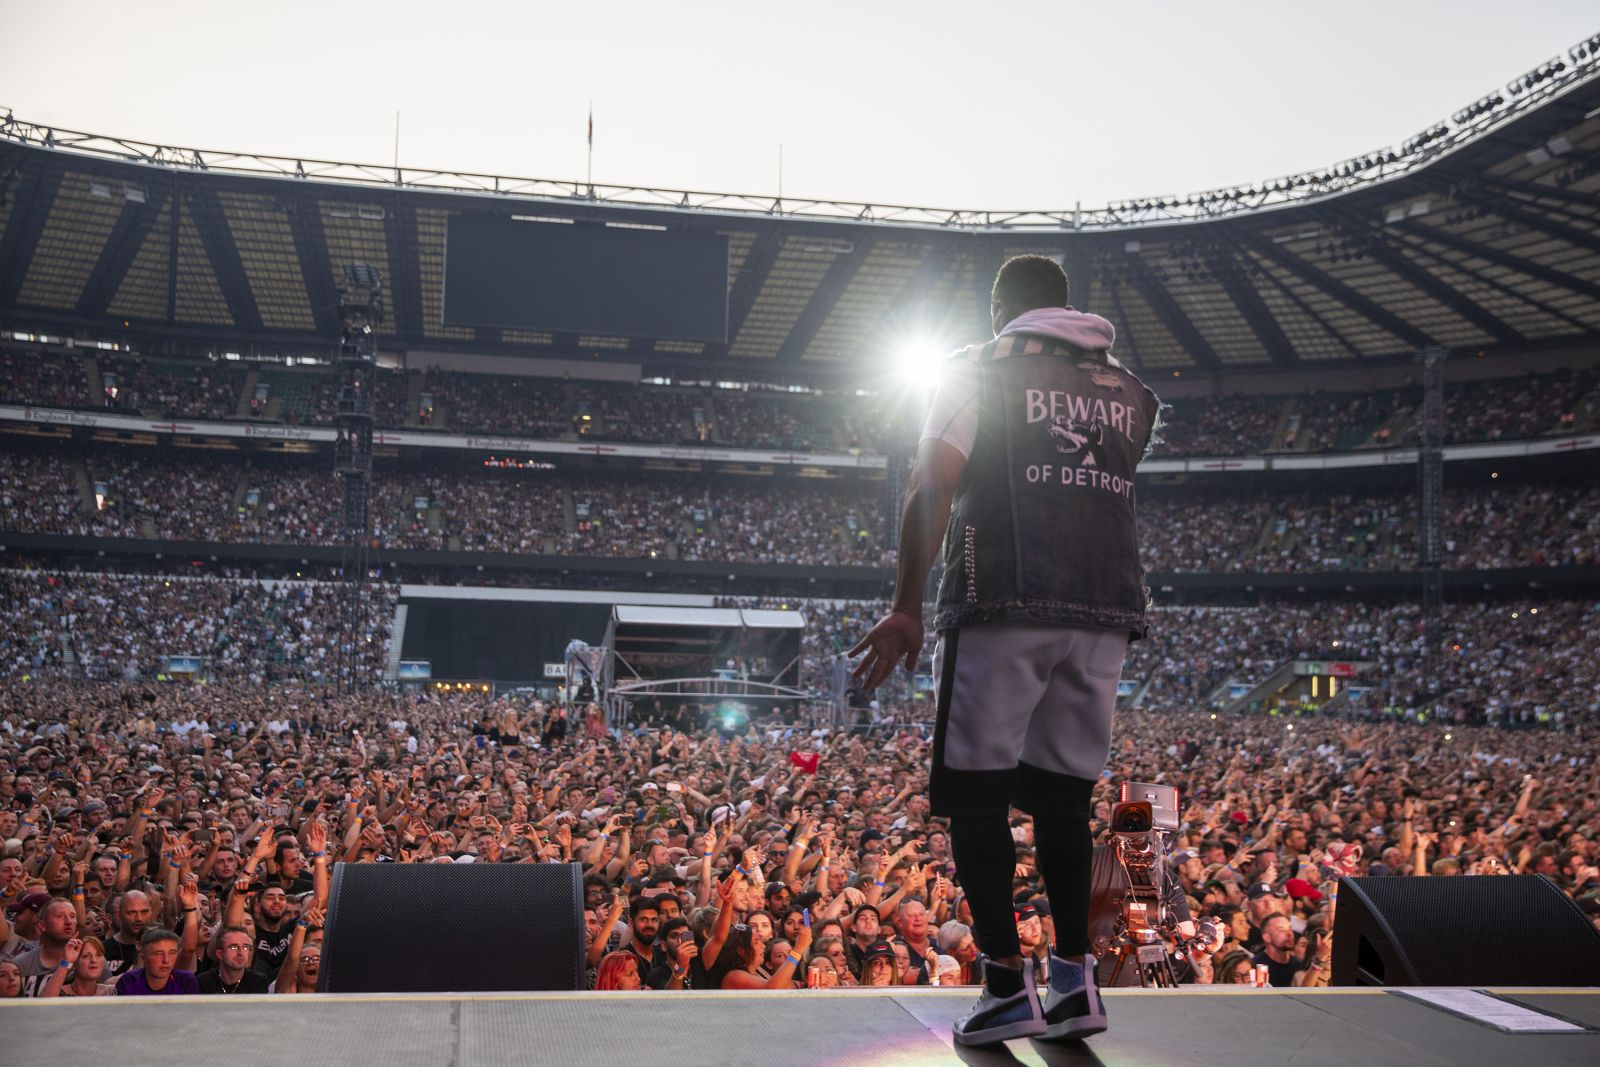 Eminem's 2018 performance in Oslo, Norway Revival Tour. Photo Credit: Jeremy Deputat